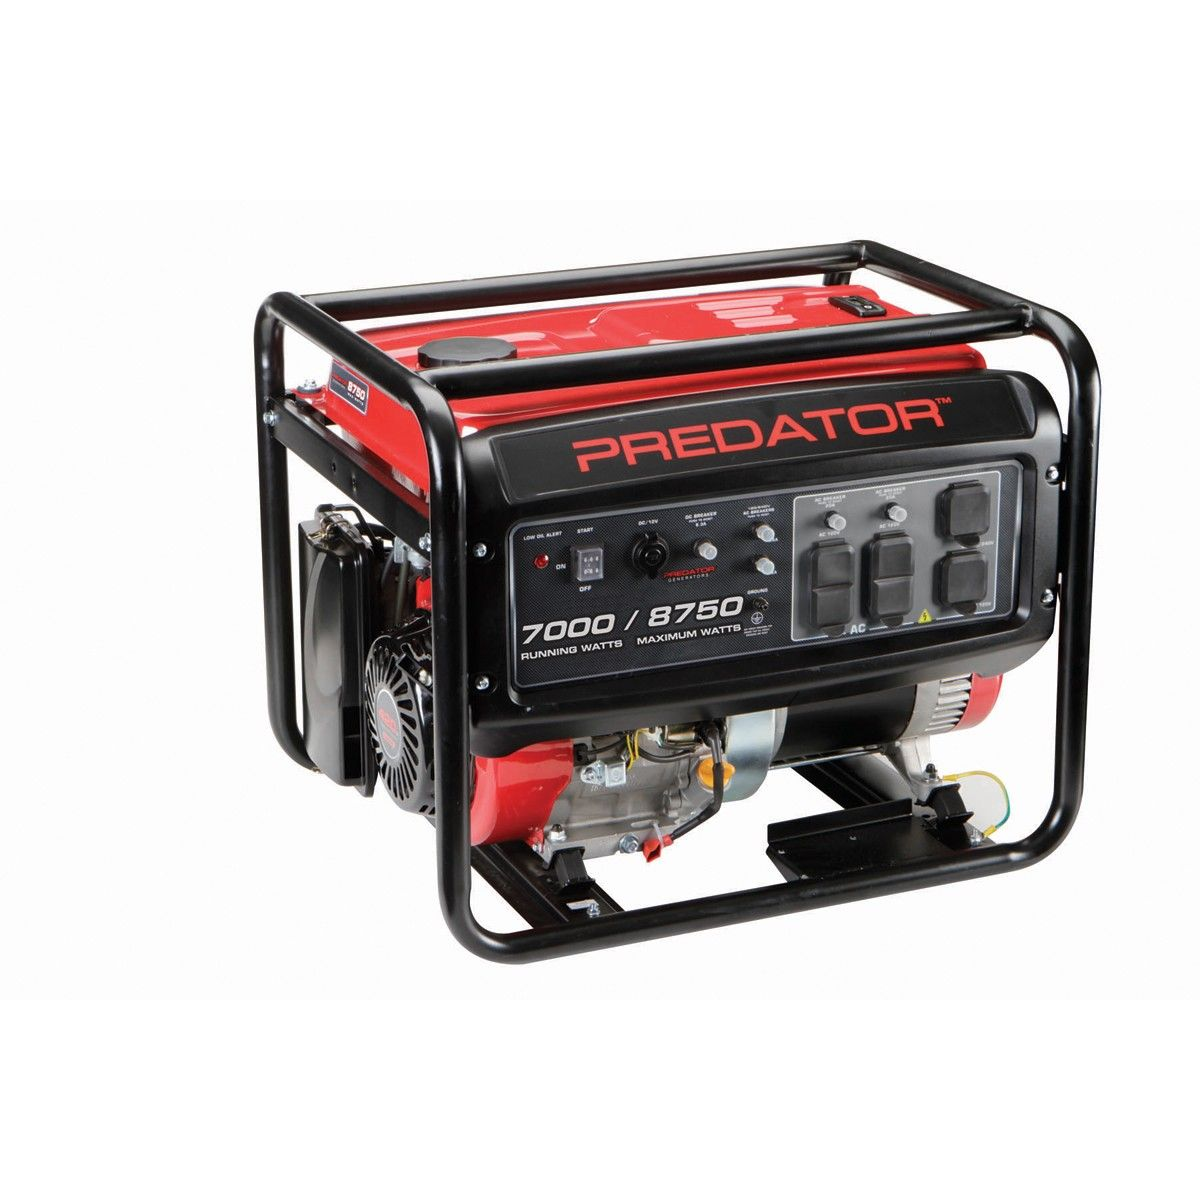 c1dcae3225ce41bf93bf5b34e6108514 predator generators 68530 420cc, 8750 watts max 7000 watts rated predator 22 hp wiring diagram at webbmarketing.co